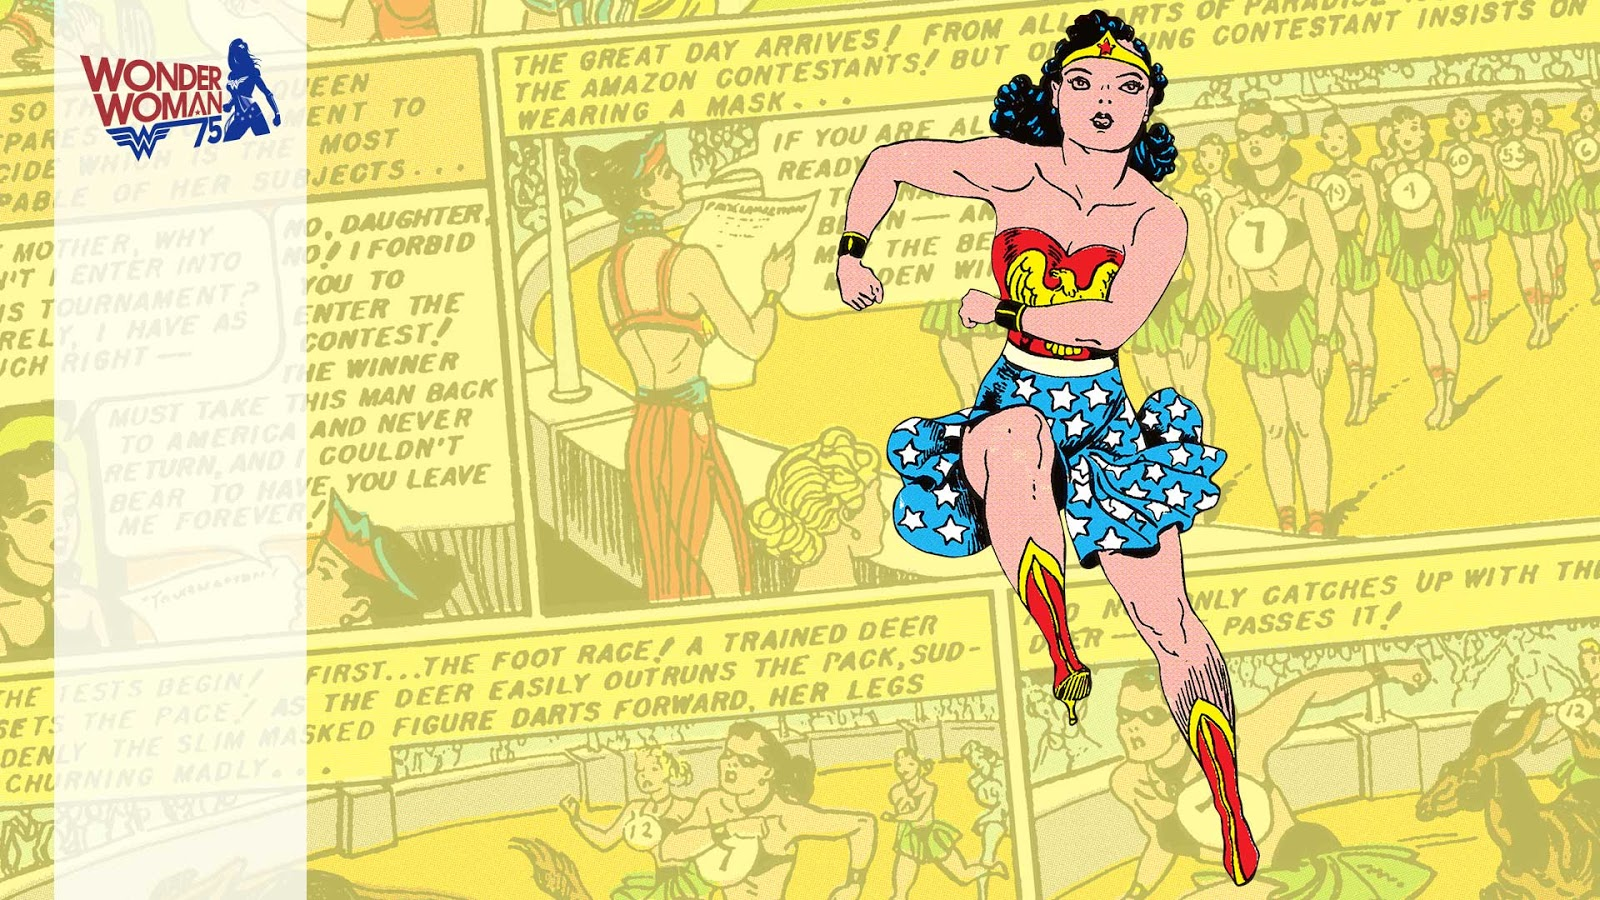 Where Was Wonder Woman Born